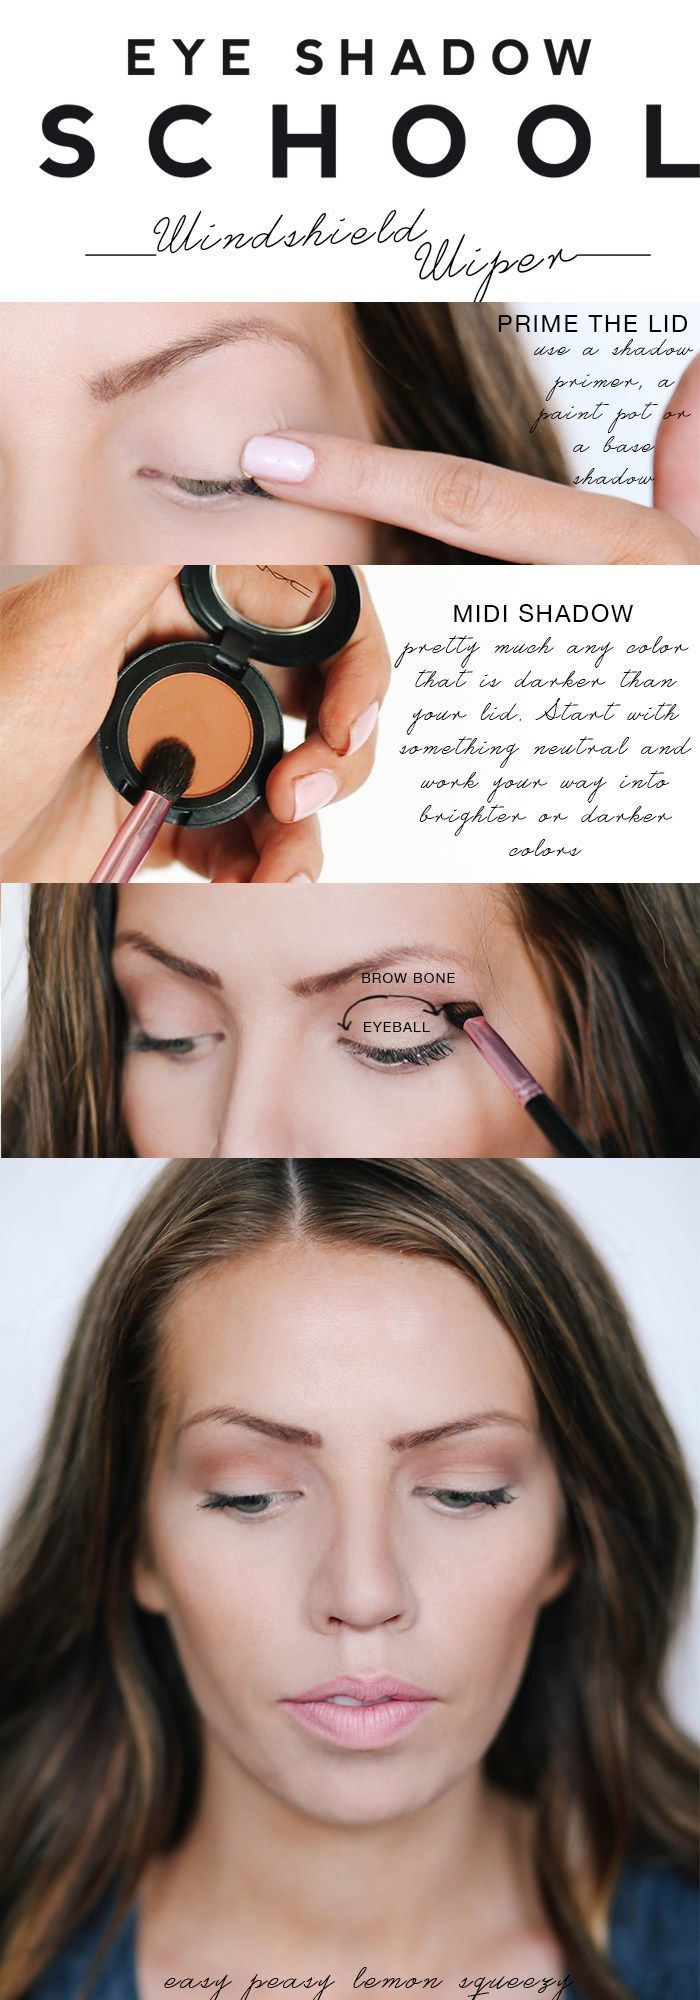 The Windshield Wiper. Every eye shadow technique simplified! So easy!!